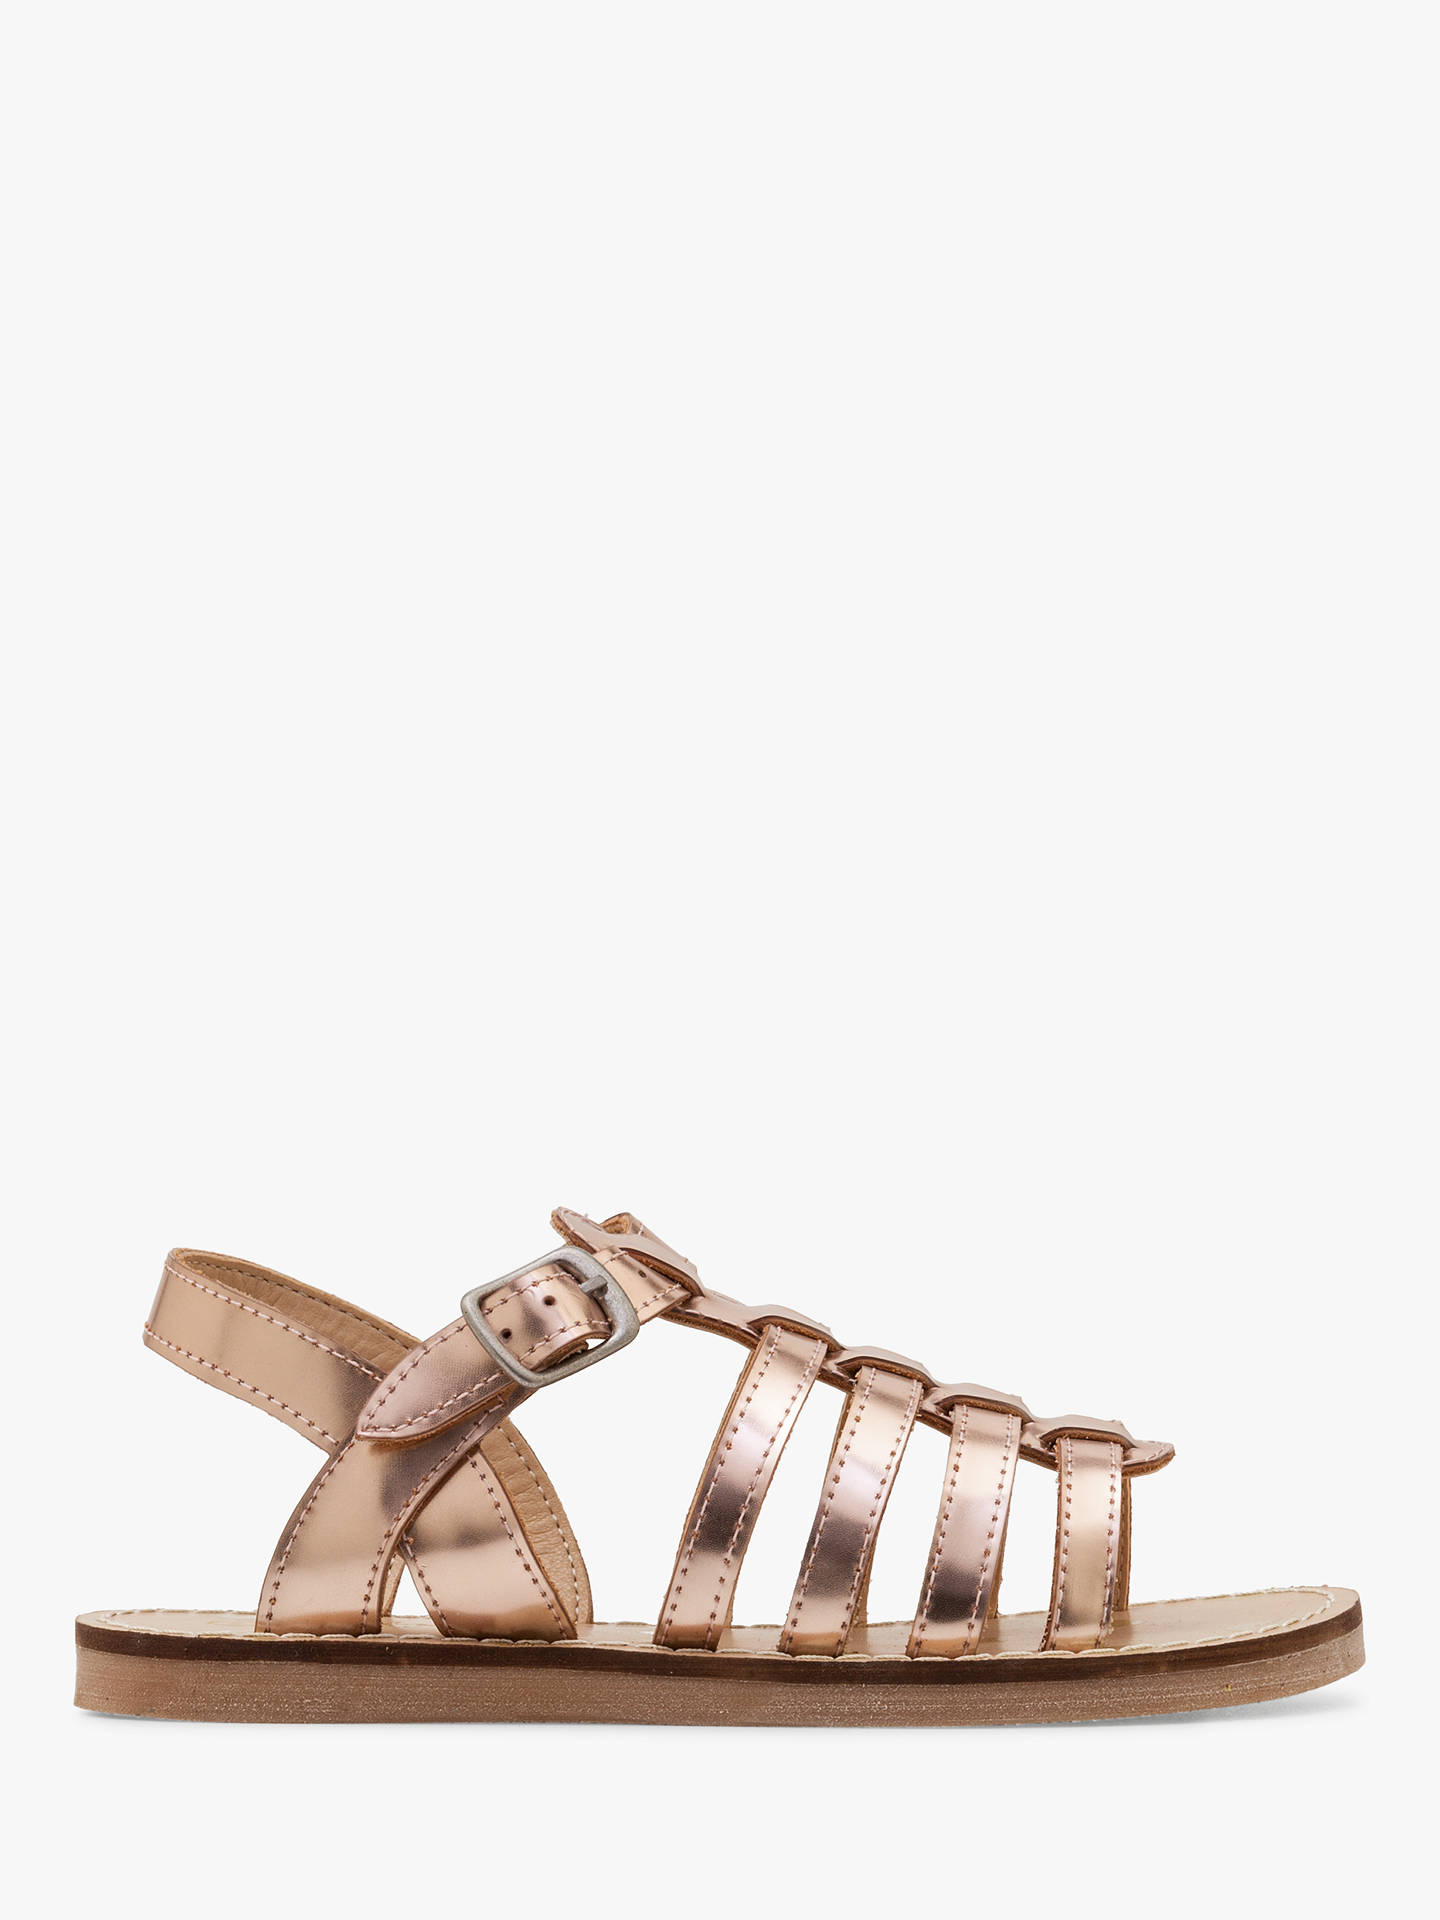 4ae2ad1b54b7 Mini Boden Children s Leather Gladiator Sandals at John Lewis   Partners